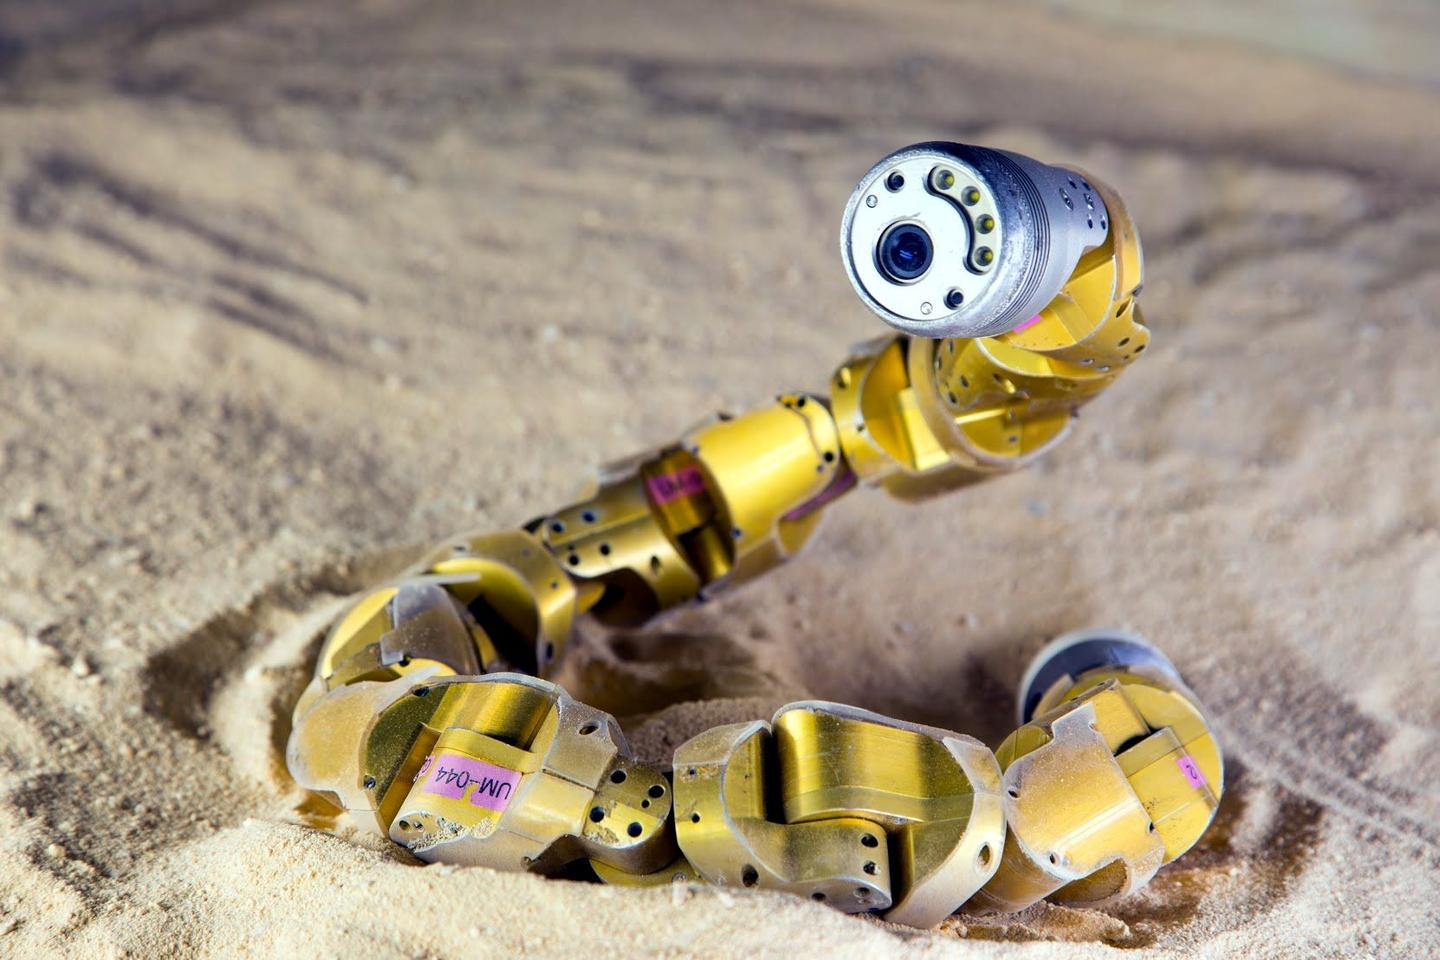 Carnegie Mellon's snake robot – now better able to ascend sandy slopes (Photo: CMU)